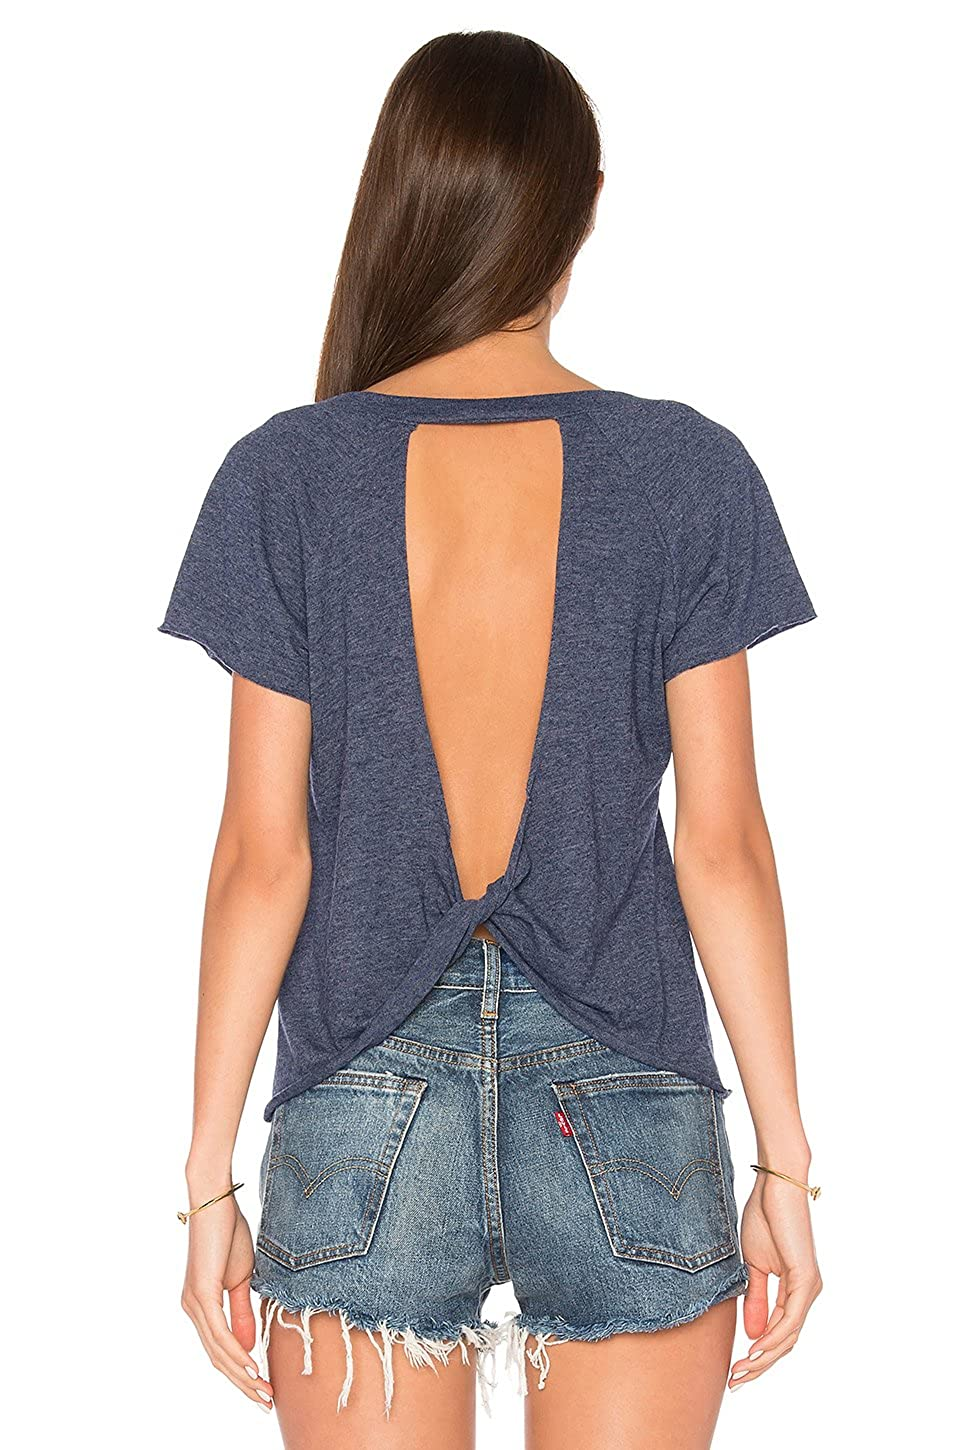 Blooming Jelly Women's Short Sleeve Open Back Shirt Backless Knotted Workout Top